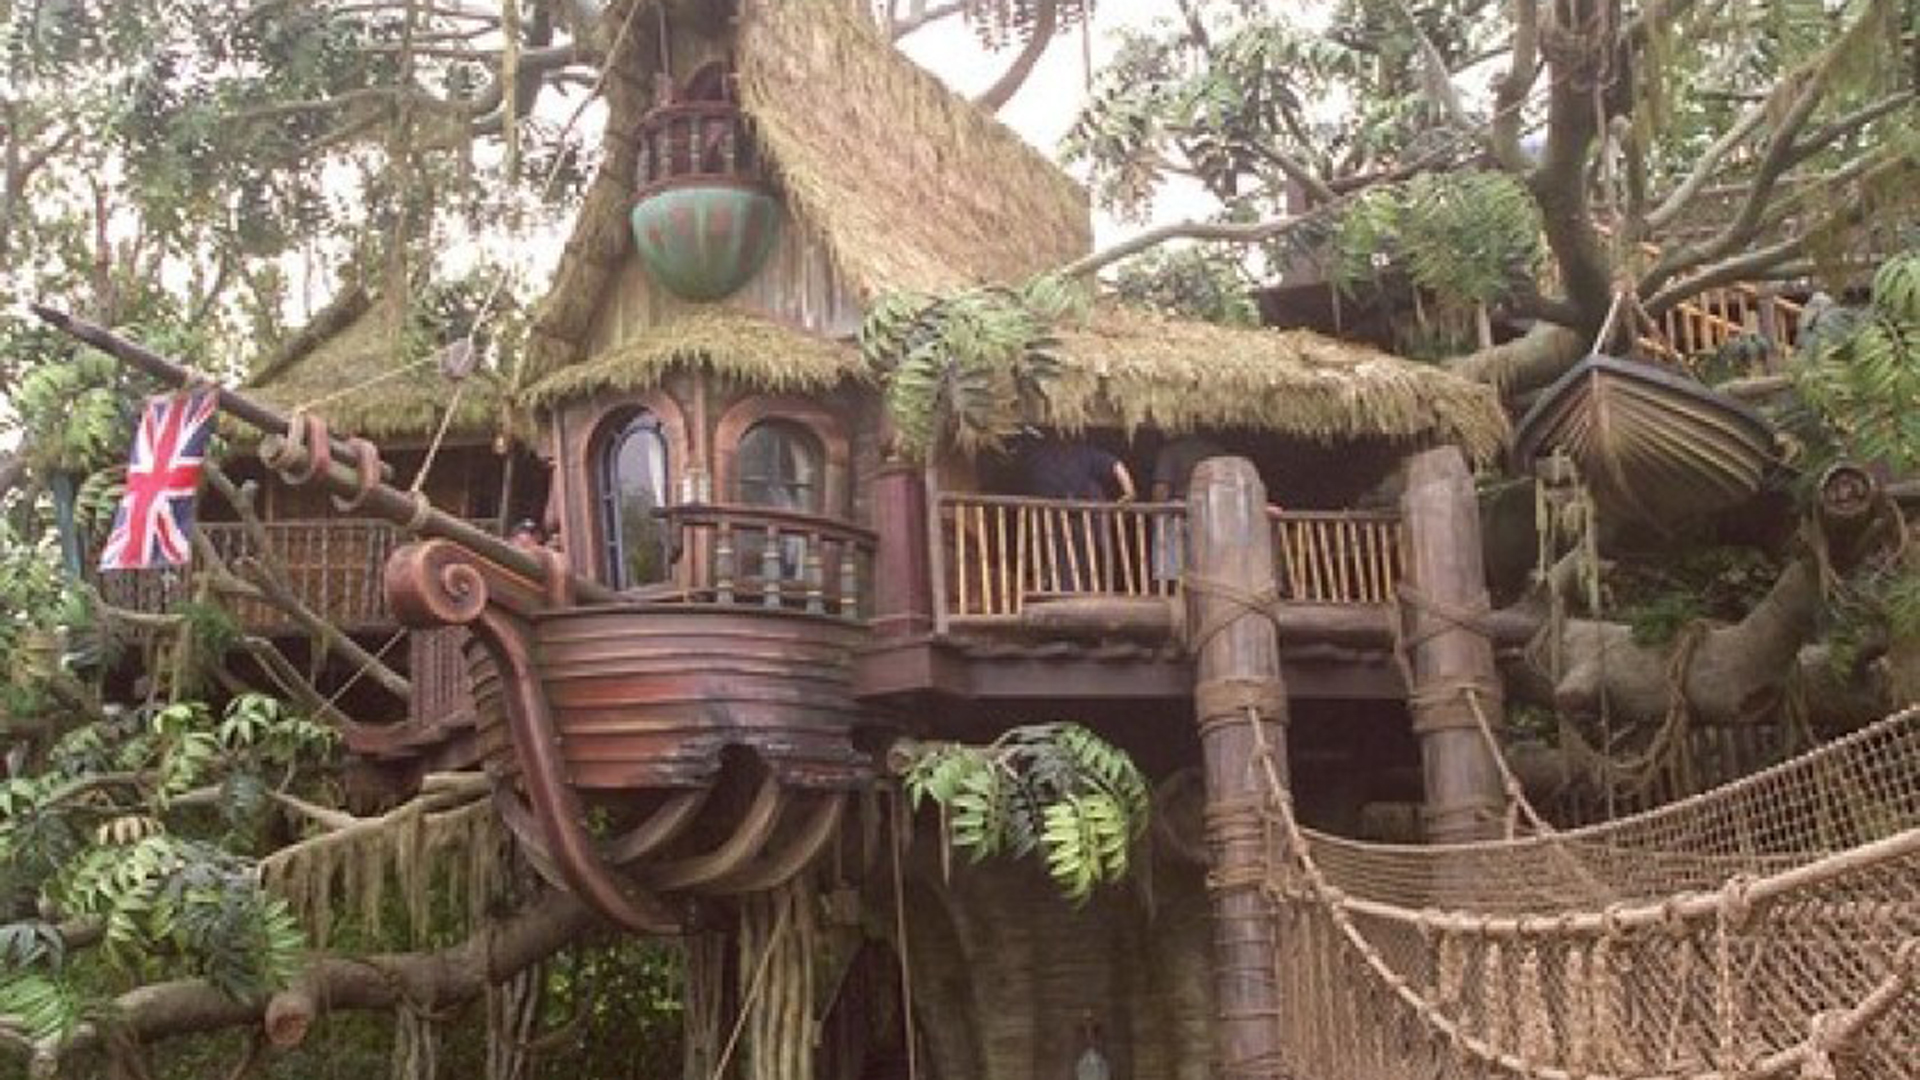 Tarzan's Treehouse at Disneyland was closed Sunday evening after a wooden slat on the attraction's bridge broke. (Credit: Robert Lachman / Los Angeles Times)